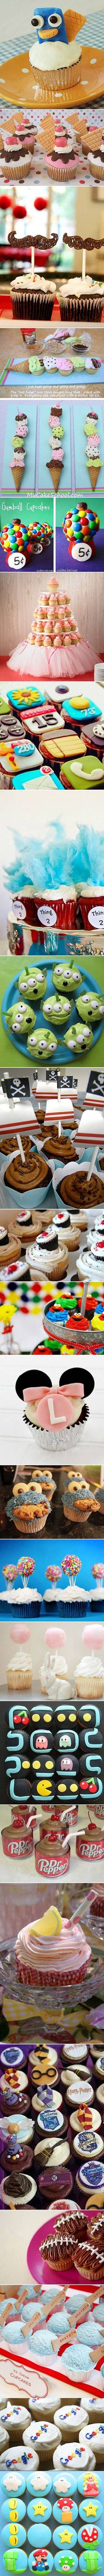 We've rounded up 24 cool and creative cupcake designs for geeks.